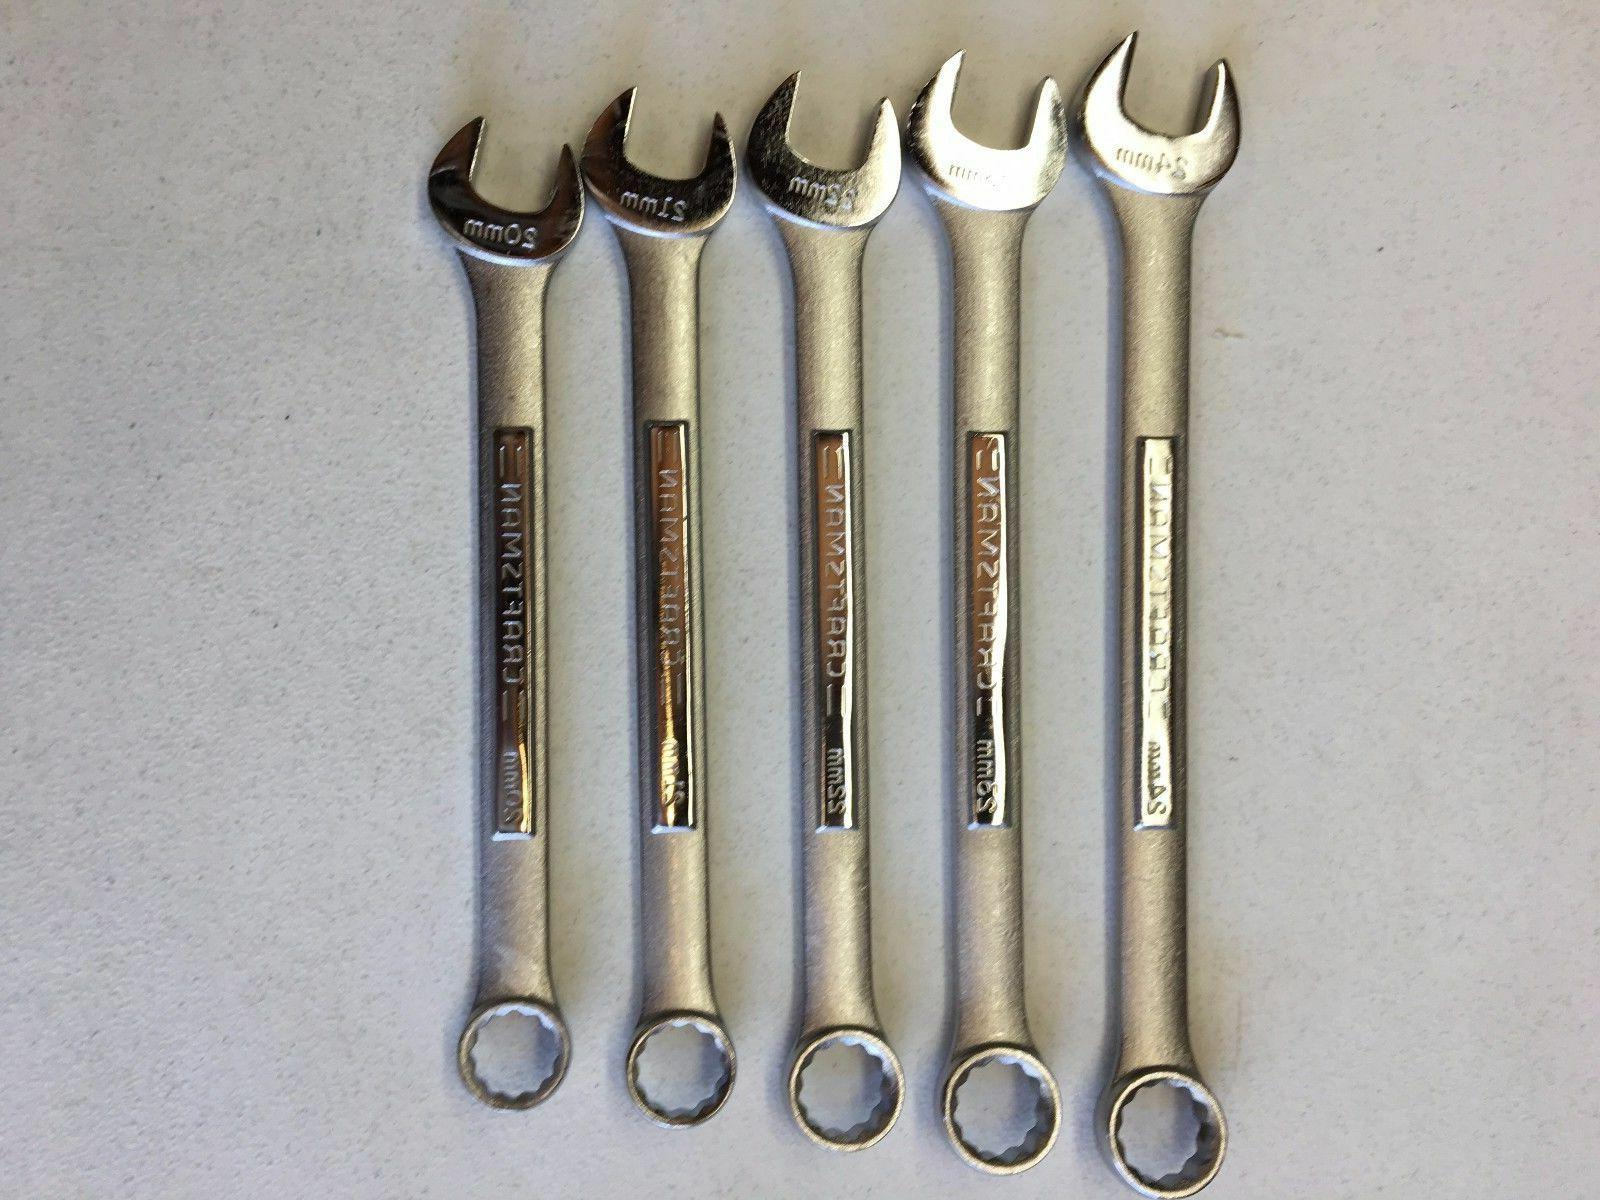 Craftsman 5 PC Large 12pt Combination Wrench Set Metric MM